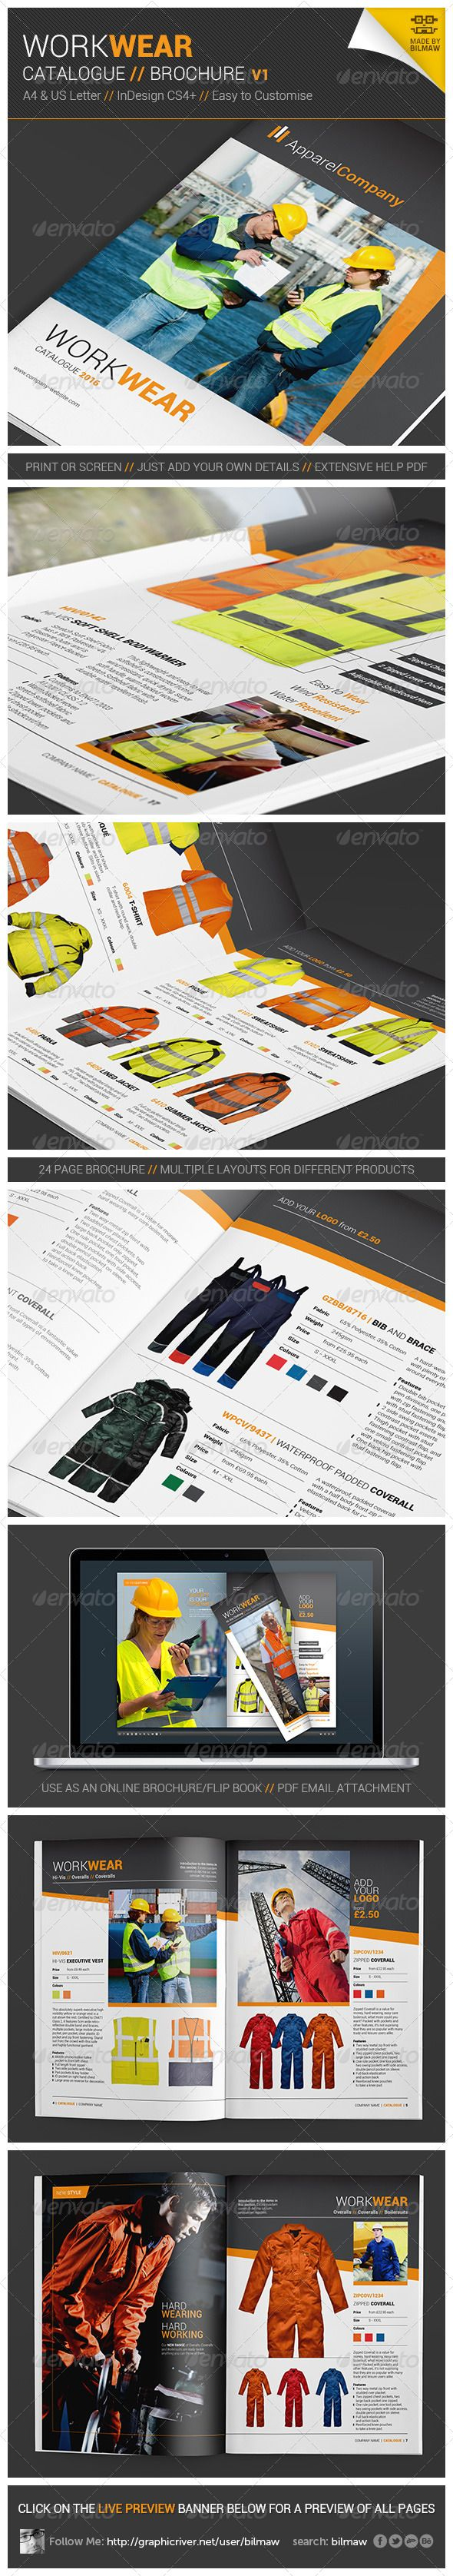 Workwear Catalogue/Brochure V1   24 page workwear catalogue or brochure with various different layouts for multiple types of products. Editable template